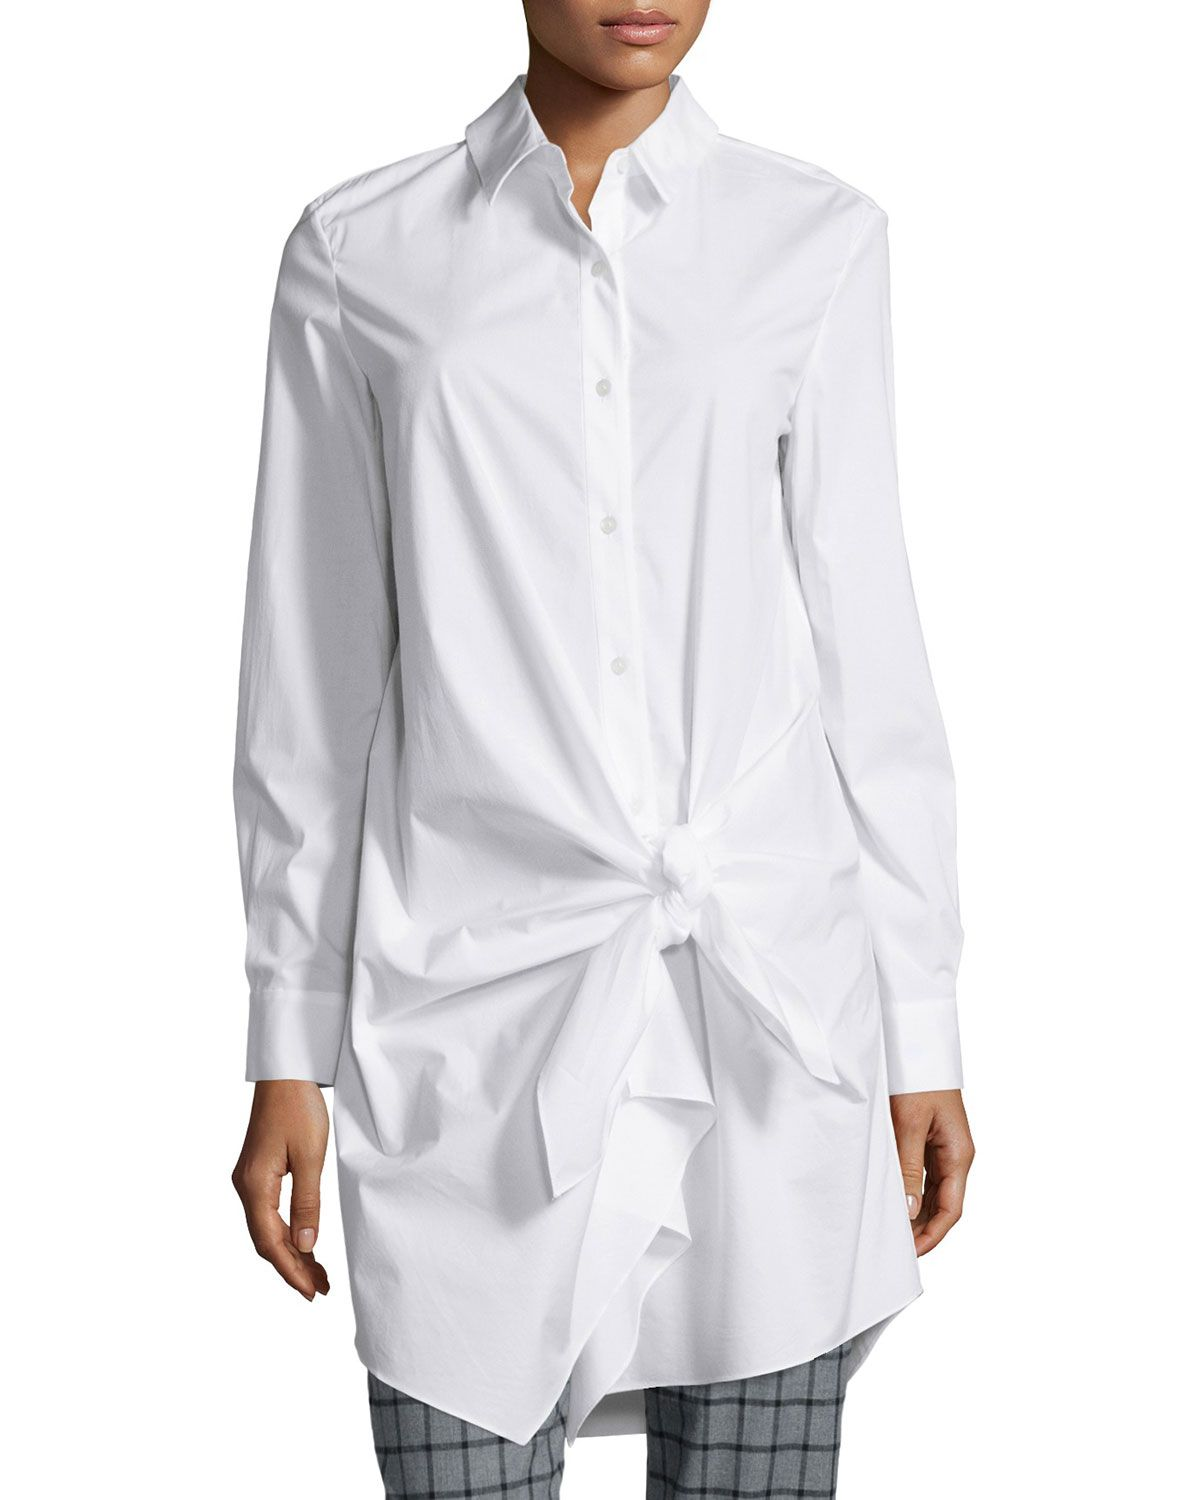 Long-Sleeve Side-Tie Shirtdress, White, Size: 4